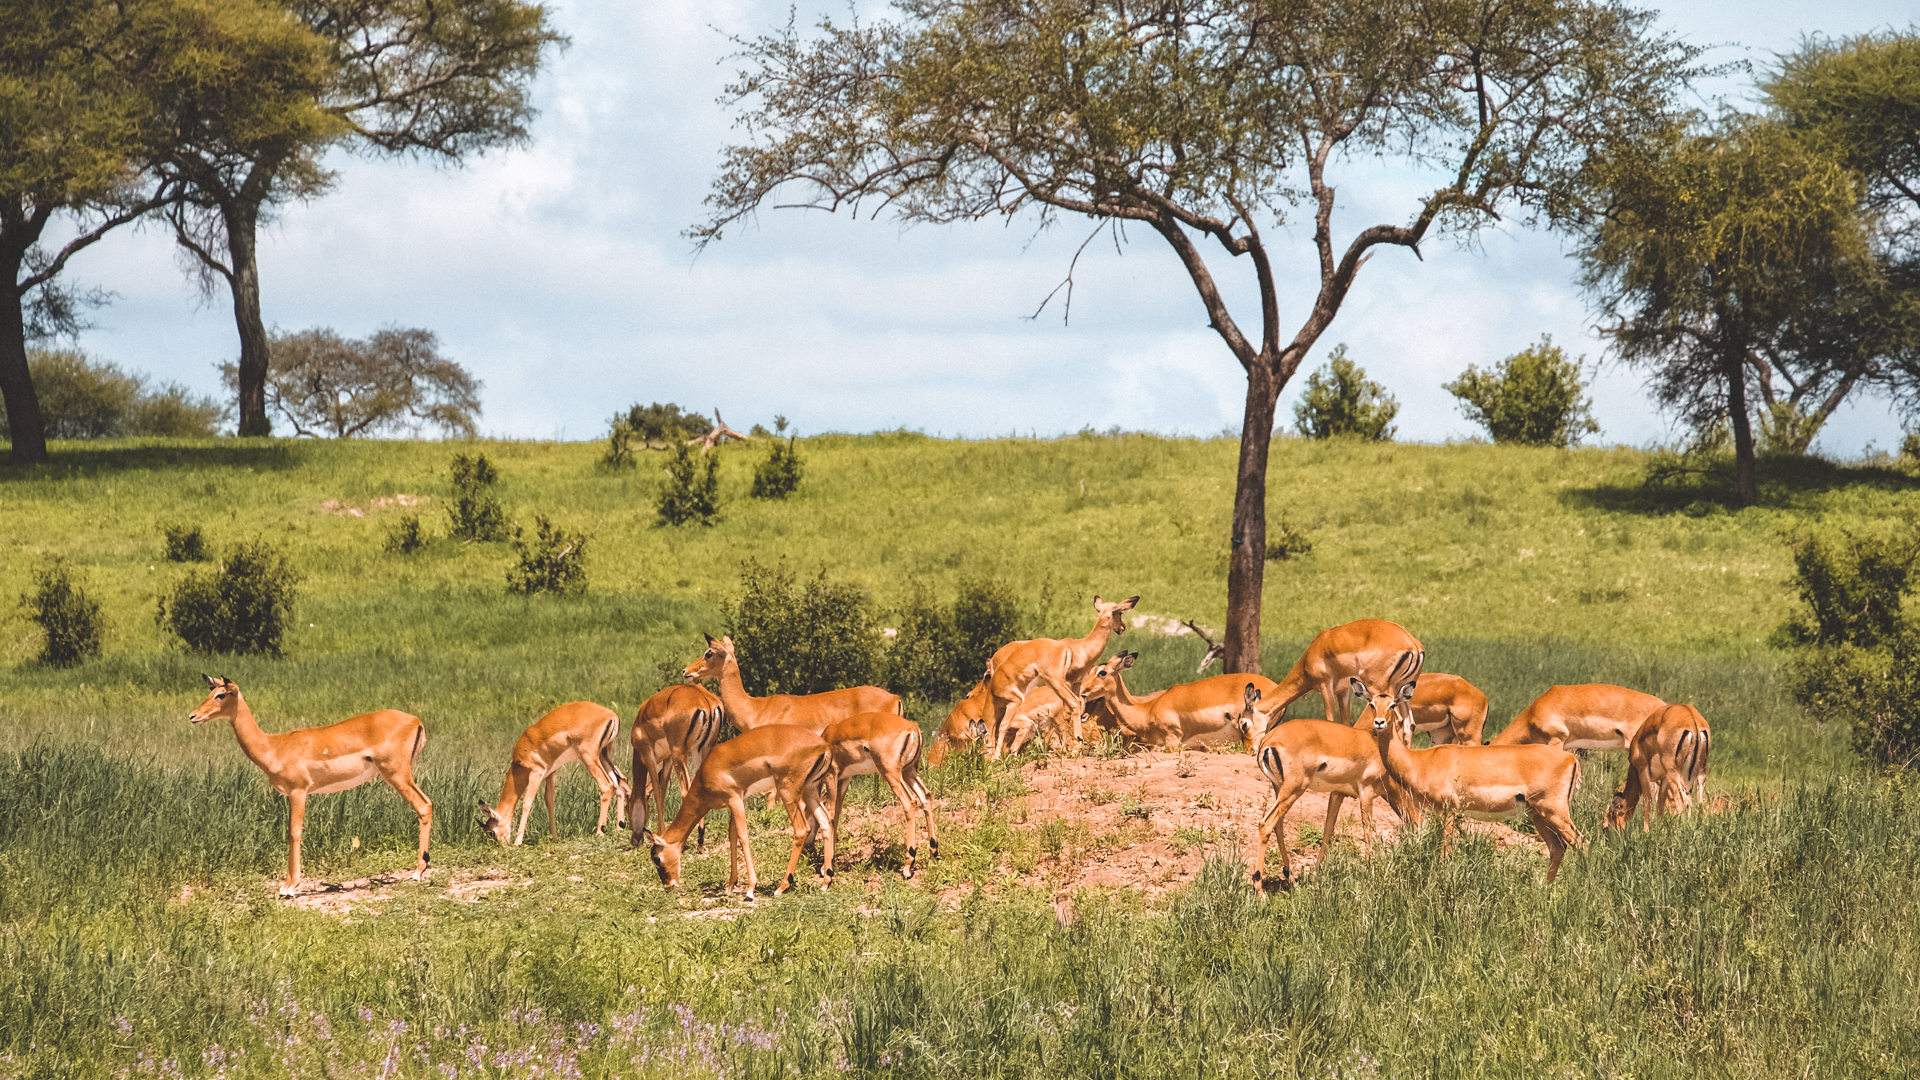 Passing a beautiful herd of female impalas, the most common antelopes in the Serengeti National Park, Tanzania